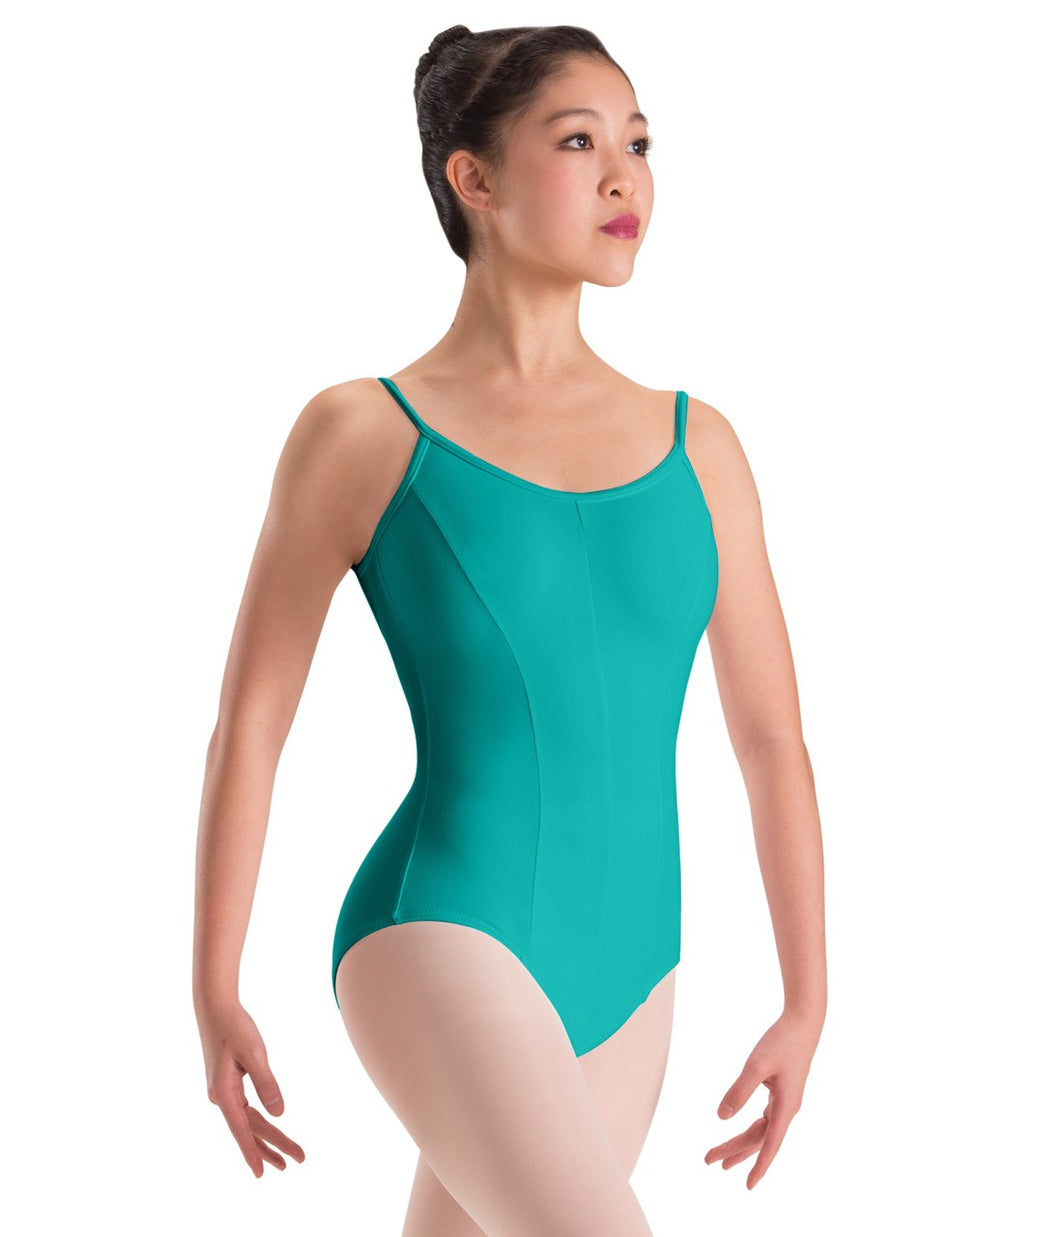 Motionwear - Princess Center Seam Camisole Leotard